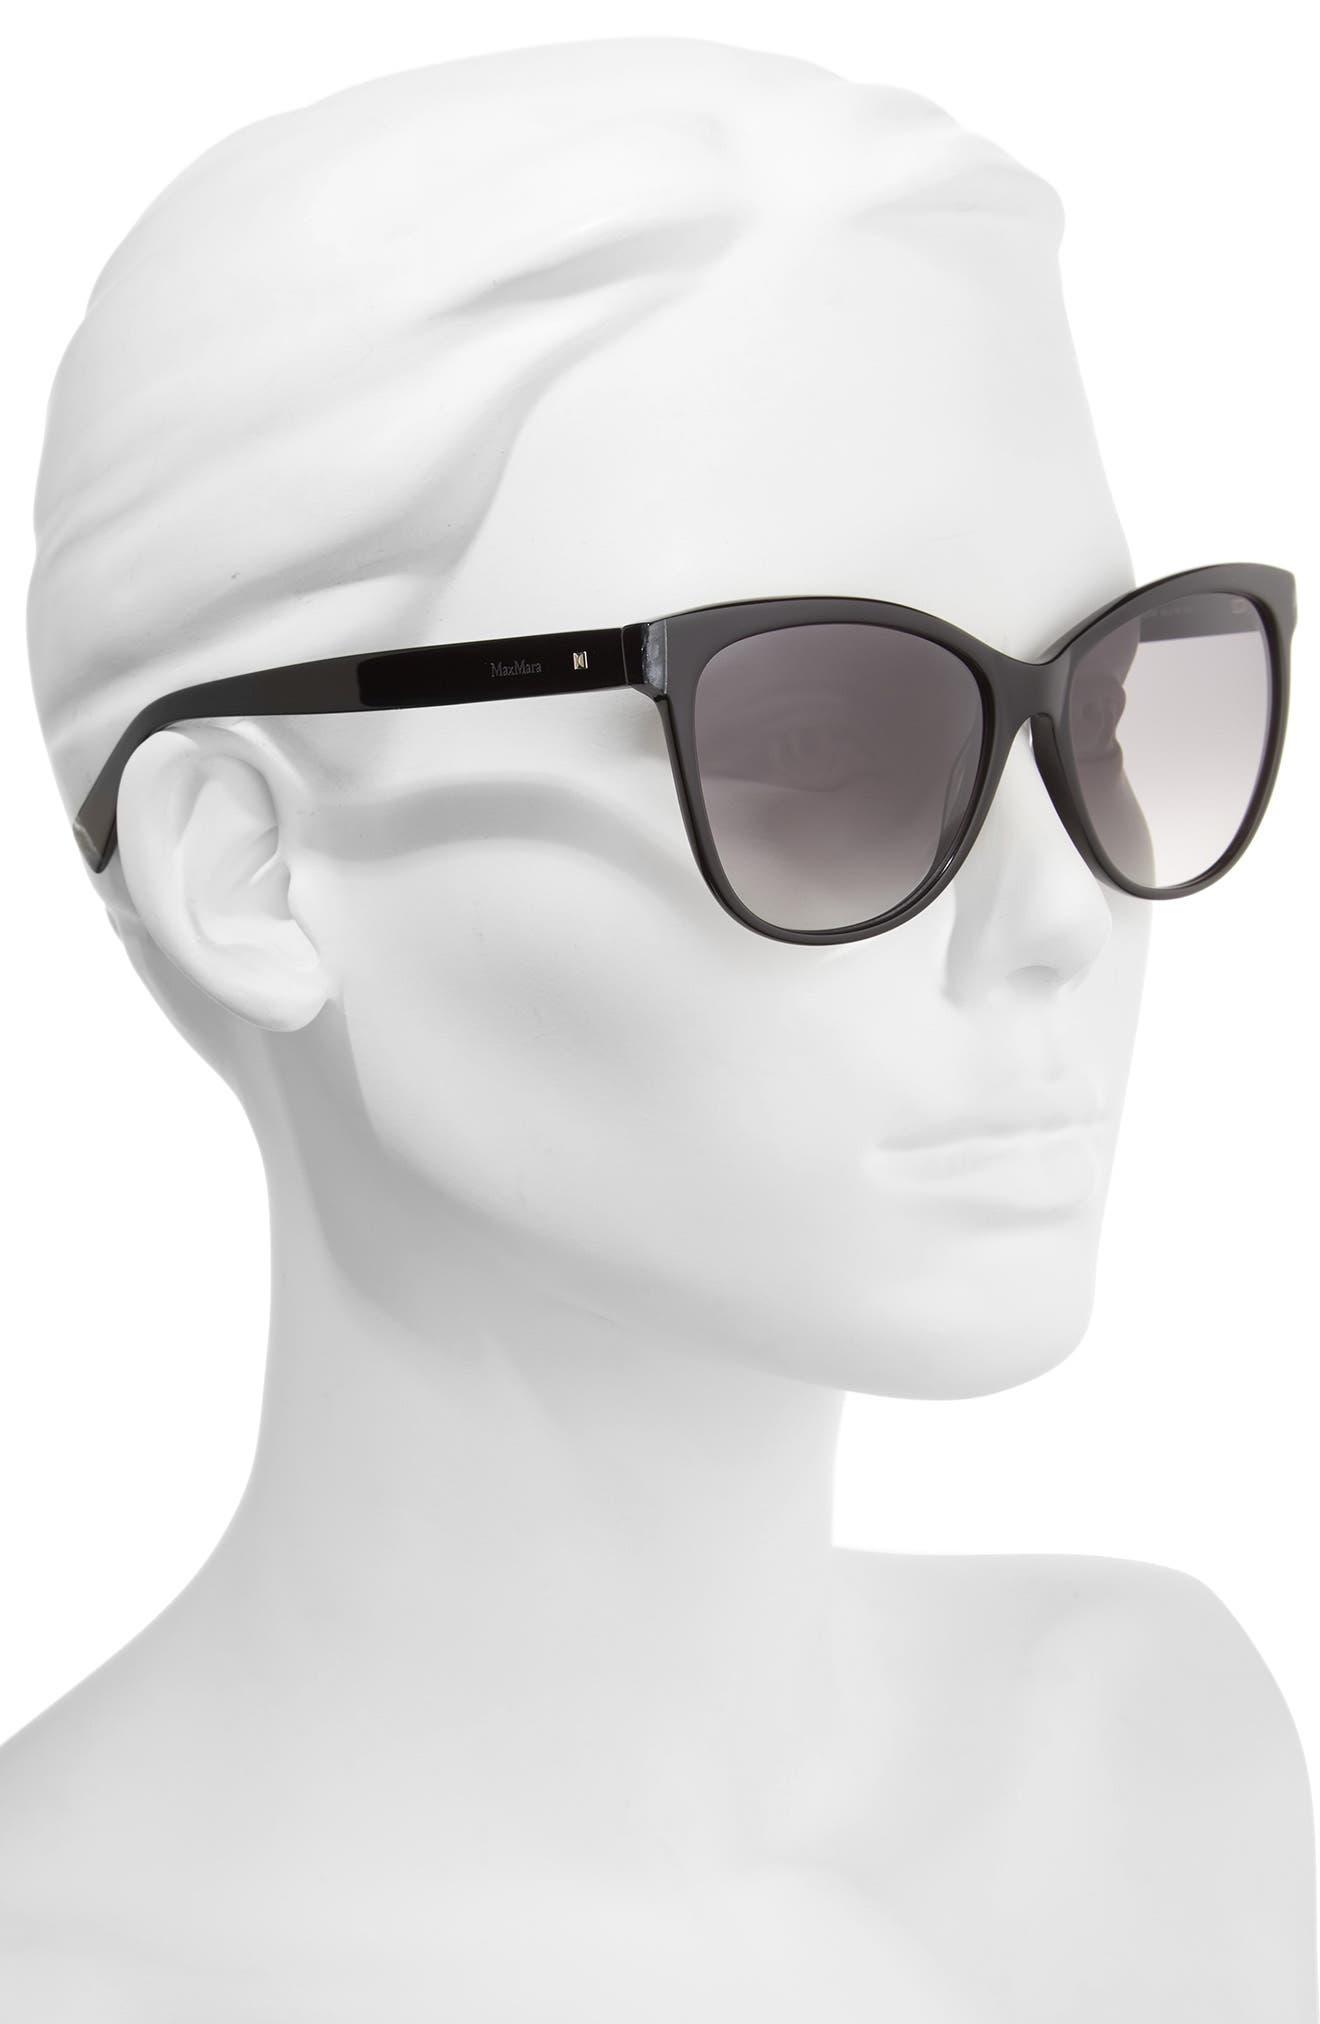 Thins 56mm Gradient Cat Eye Sunglasses,                             Alternate thumbnail 2, color,                             001